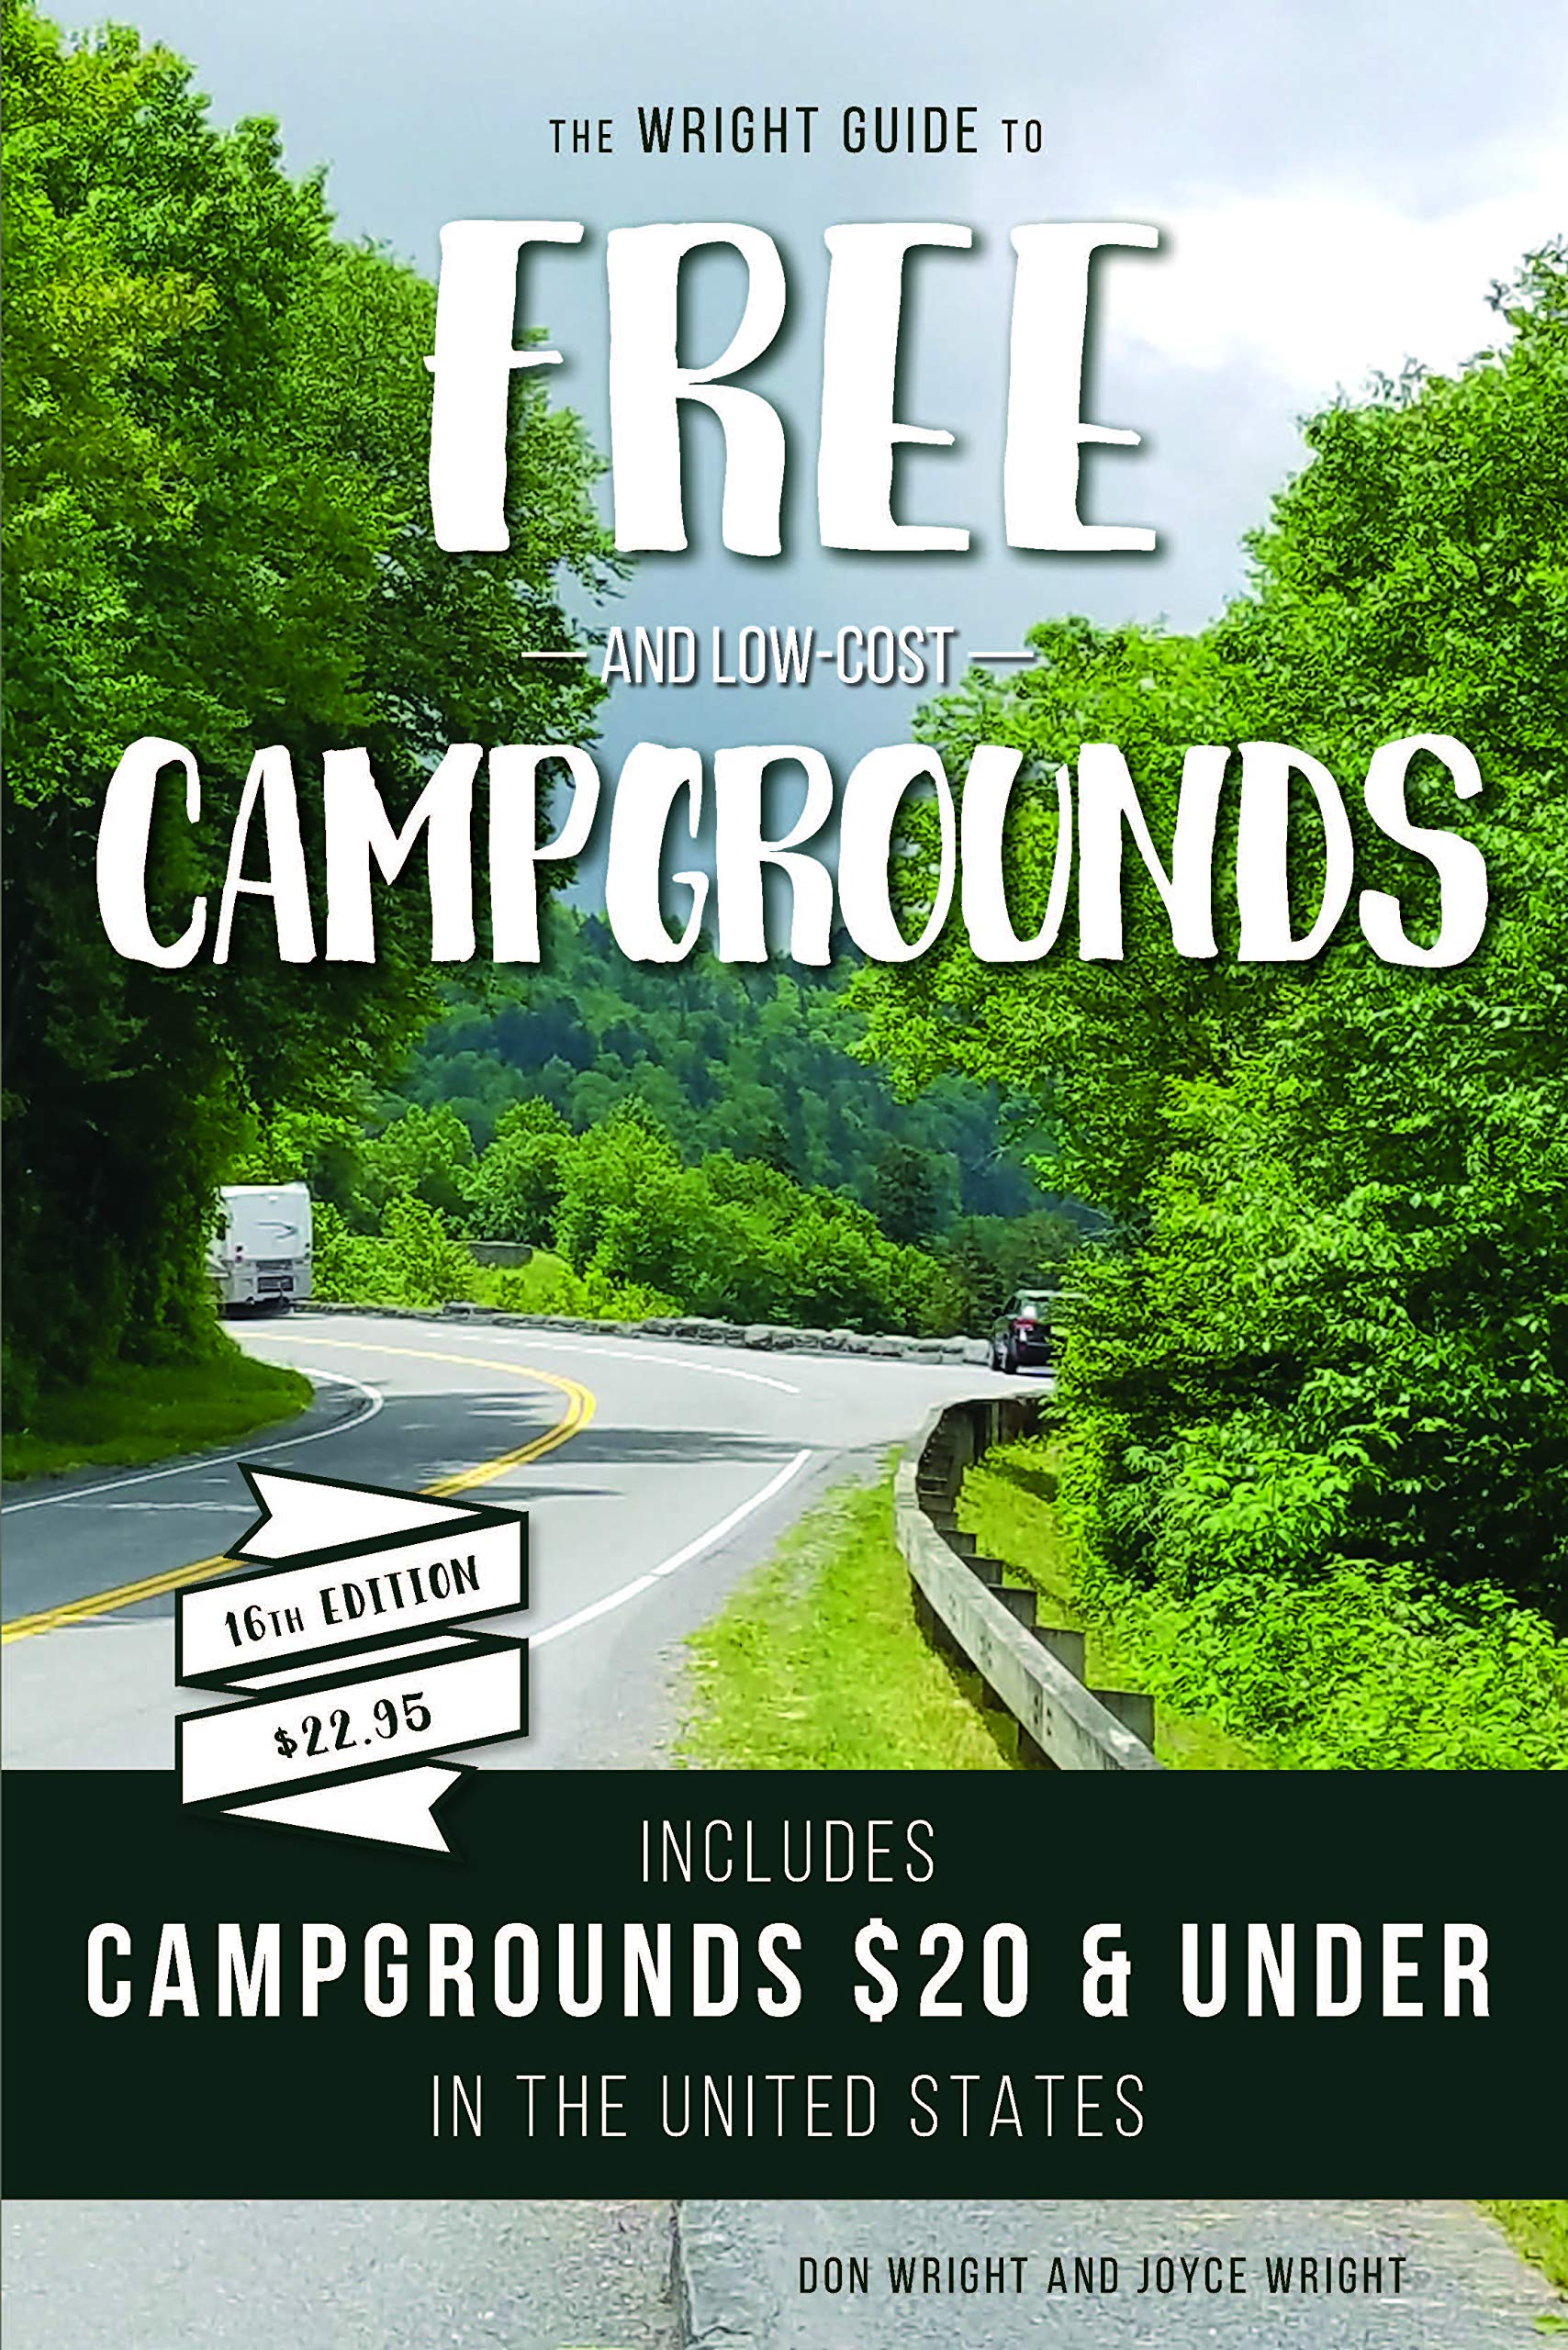 Image OfThe Wright Guide To Free And Low-cost Campgrounds: Includes Campgrounds $20 And Under In The United States (Don Wright's G...